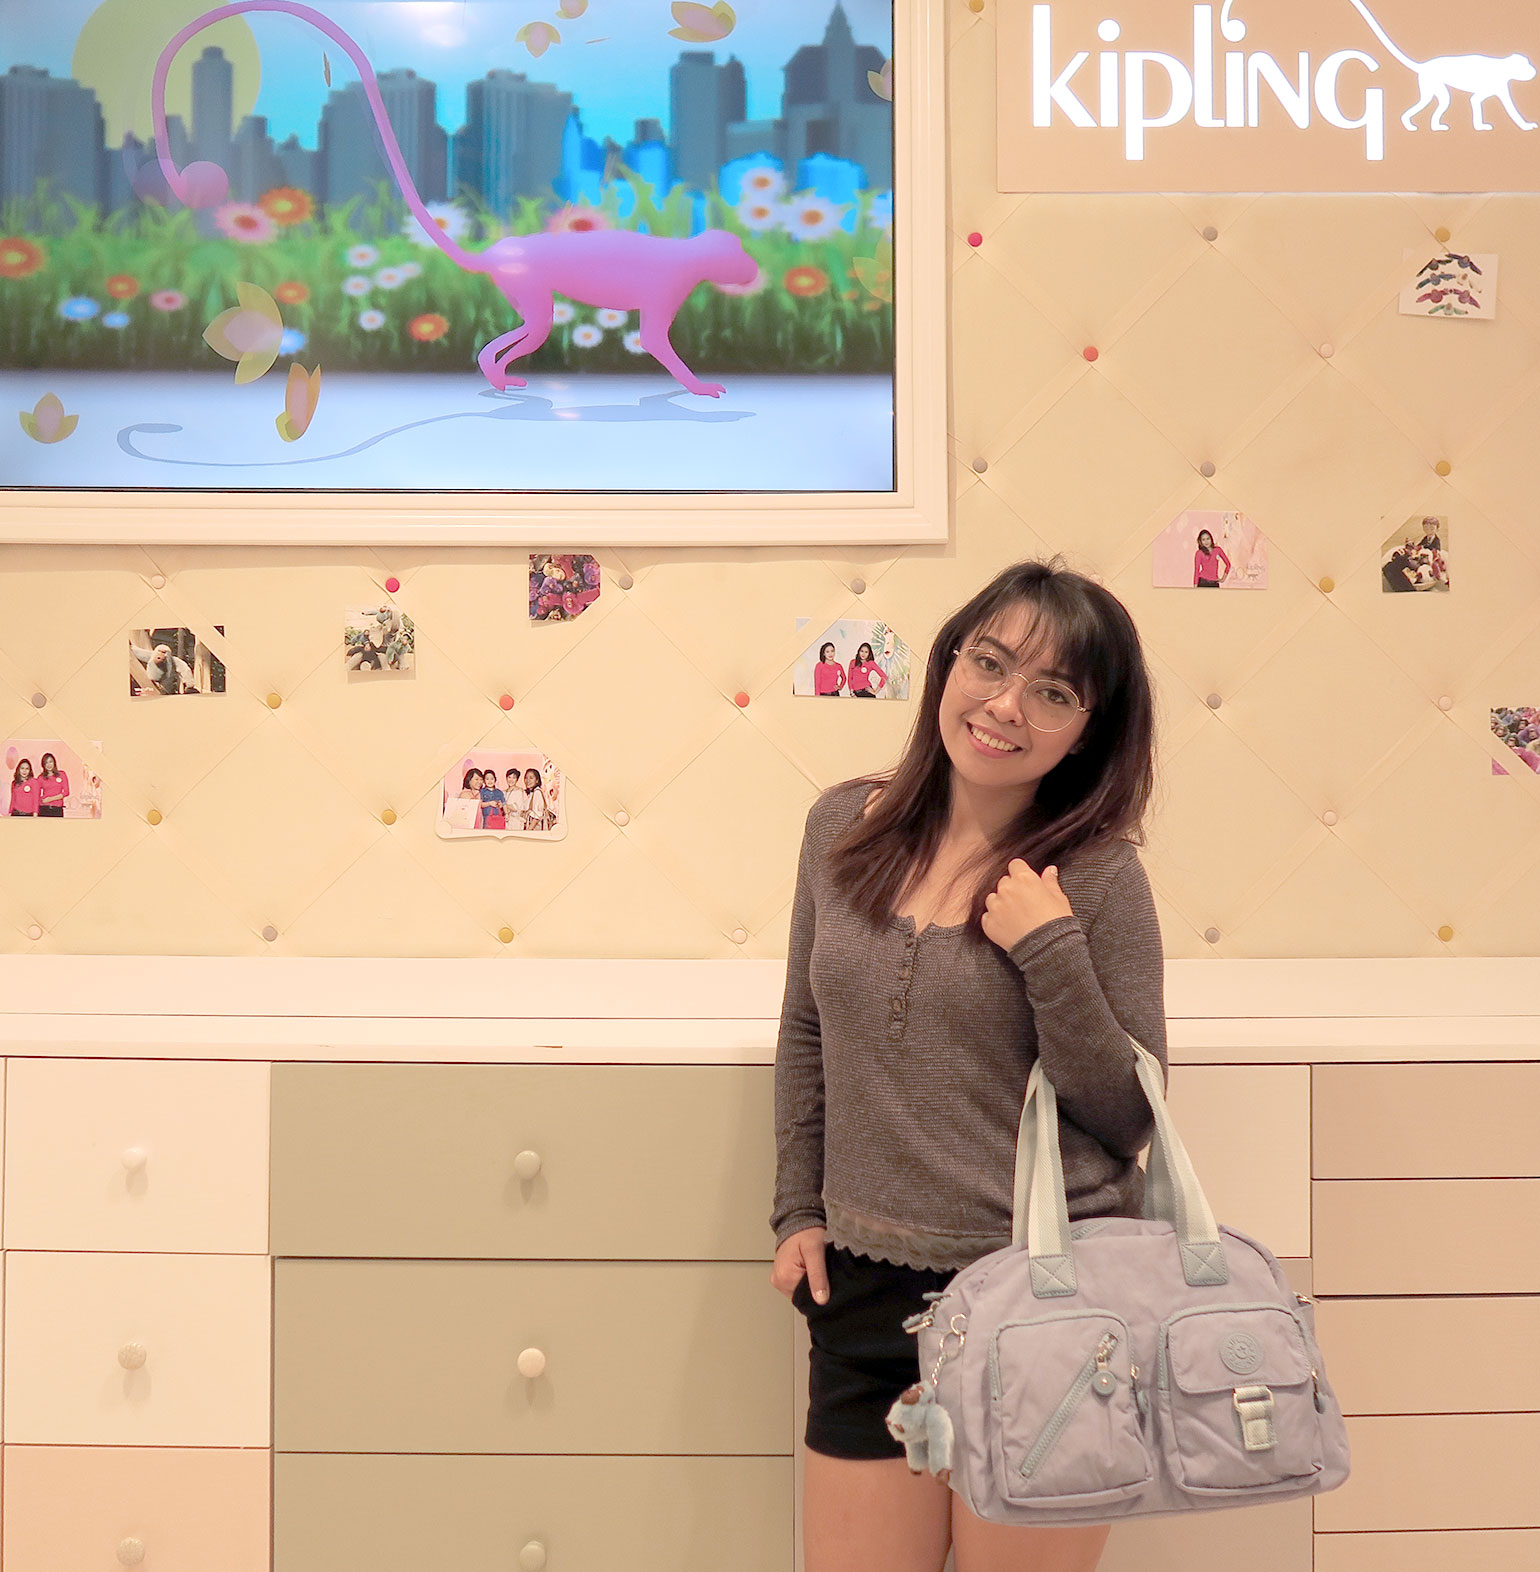 6 Kipling Philippines 30 years - Uptown Mall - Dream Garden Collection - Gen-zel.com(c)